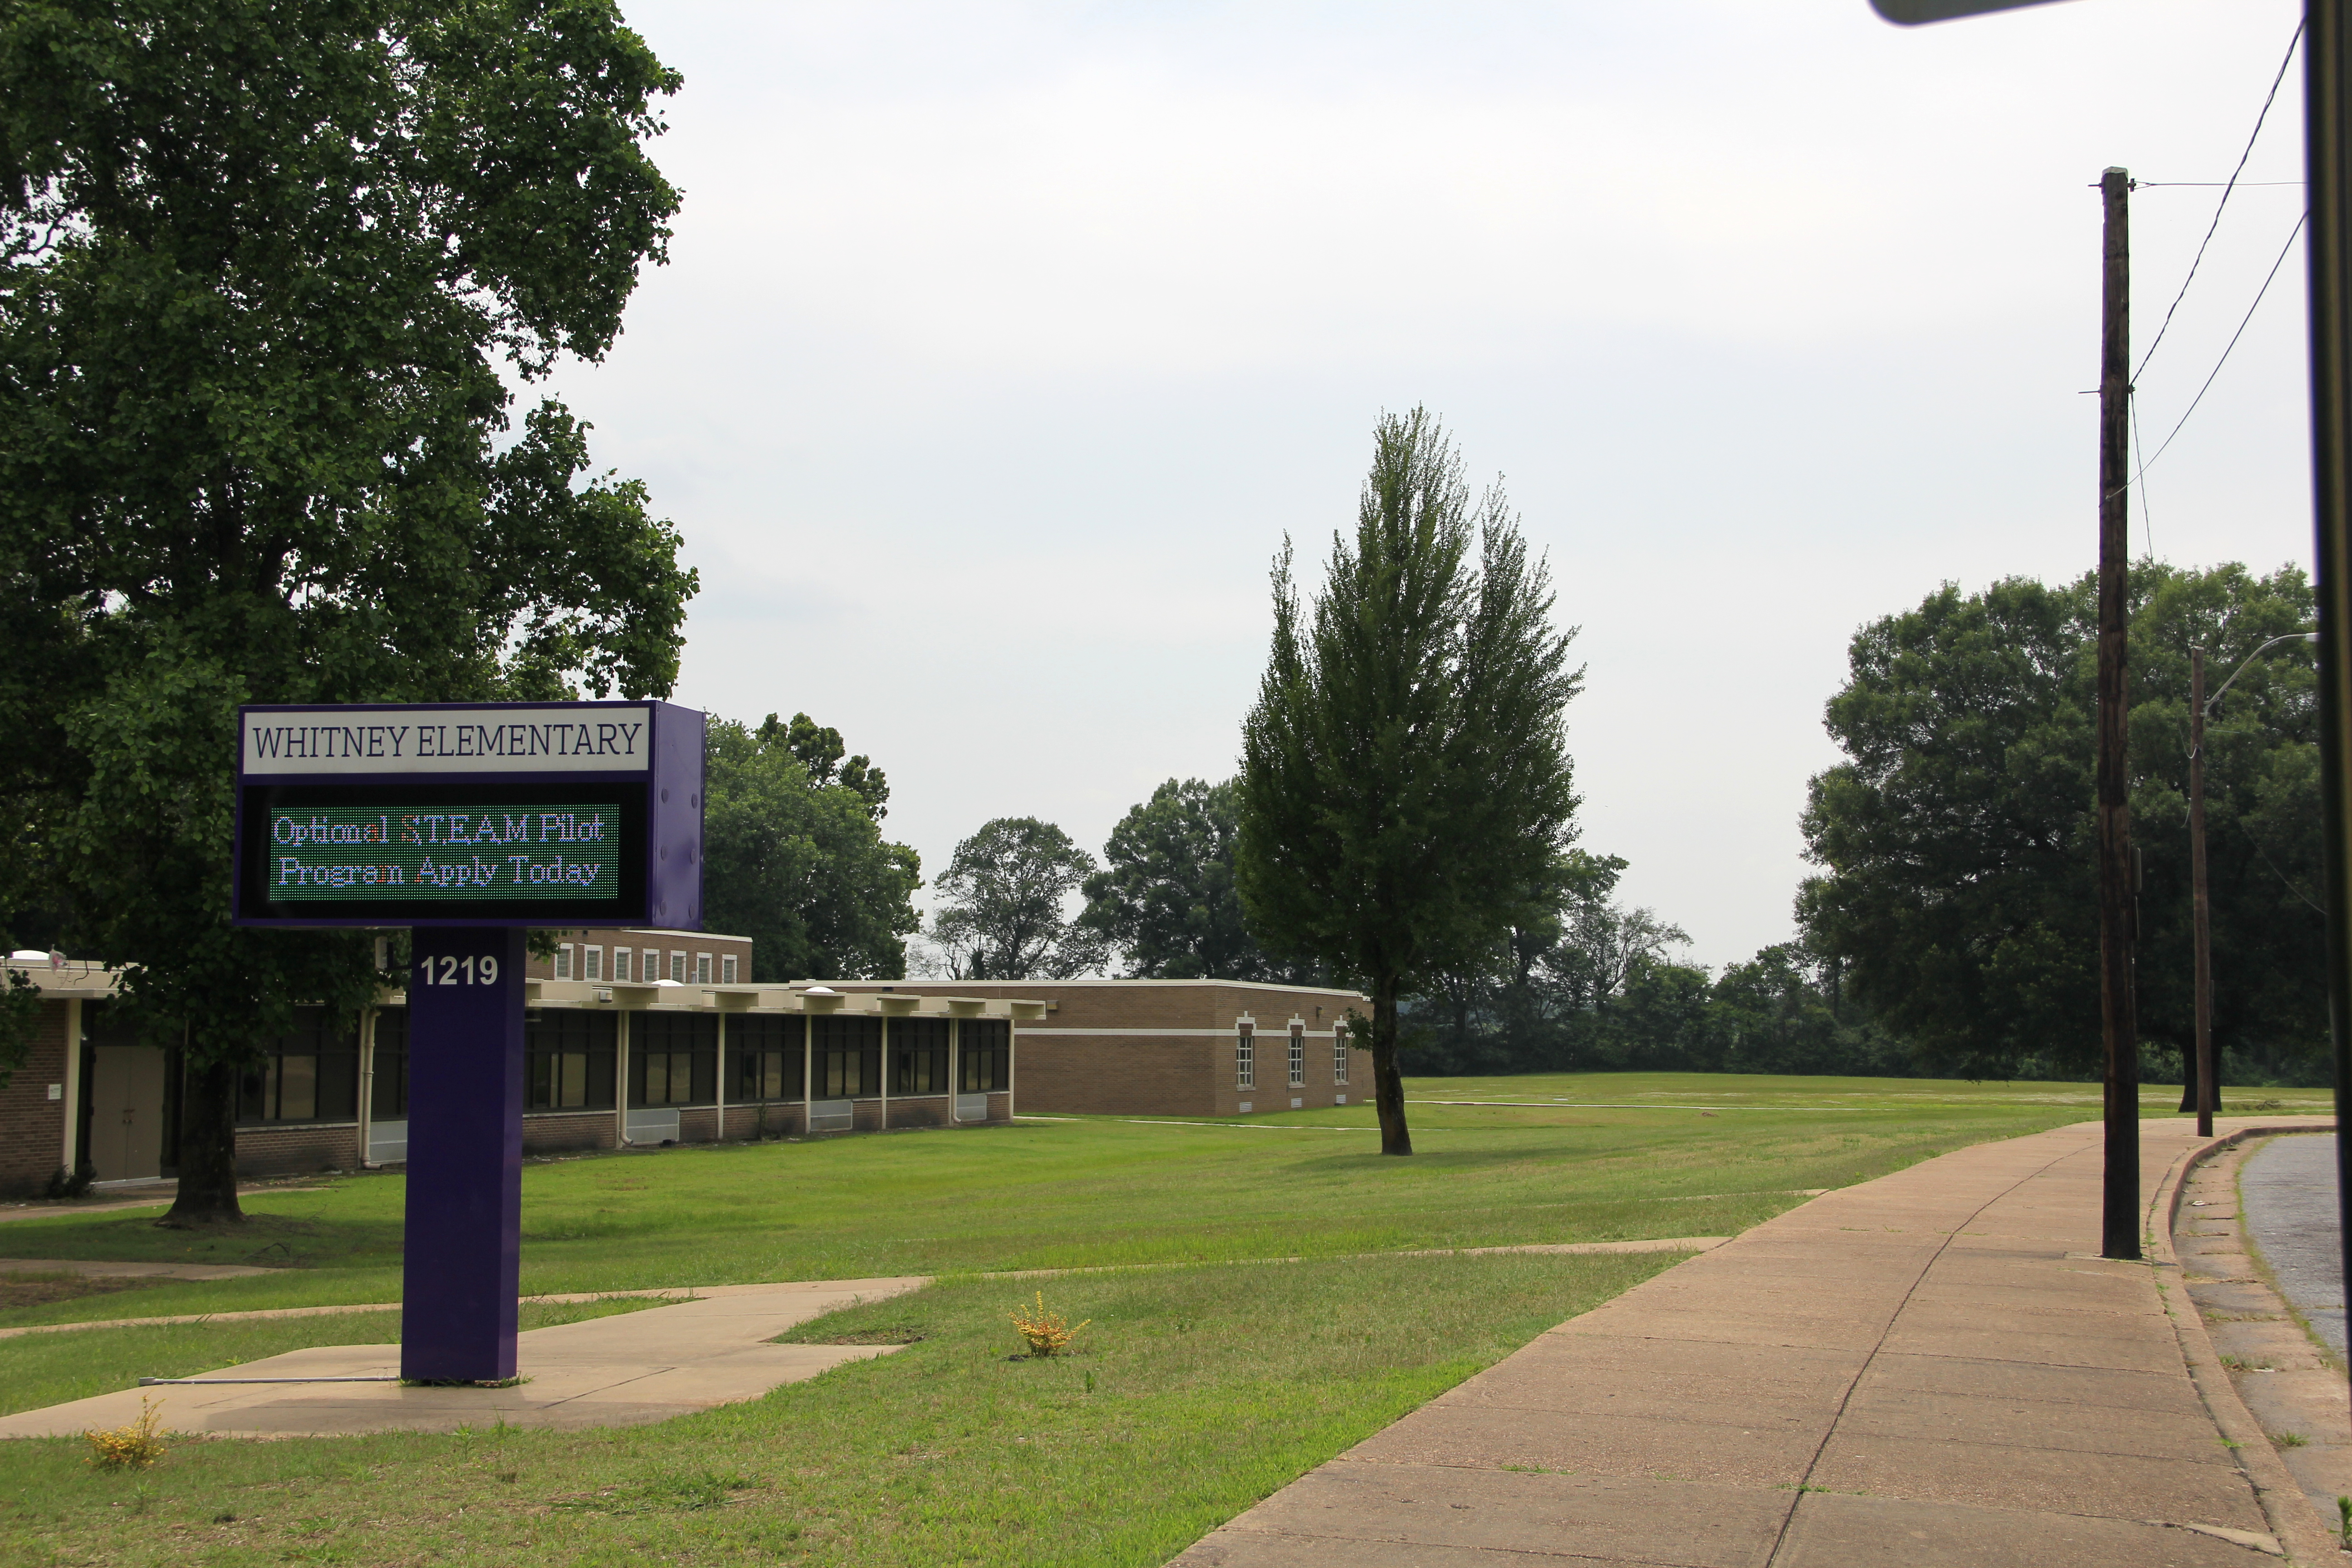 Whitney Achievement Elementary School, in the Memphis community of Frayser, is located adjacent to a field (behind the tree line) that is the site of a proposed demolition landfill.